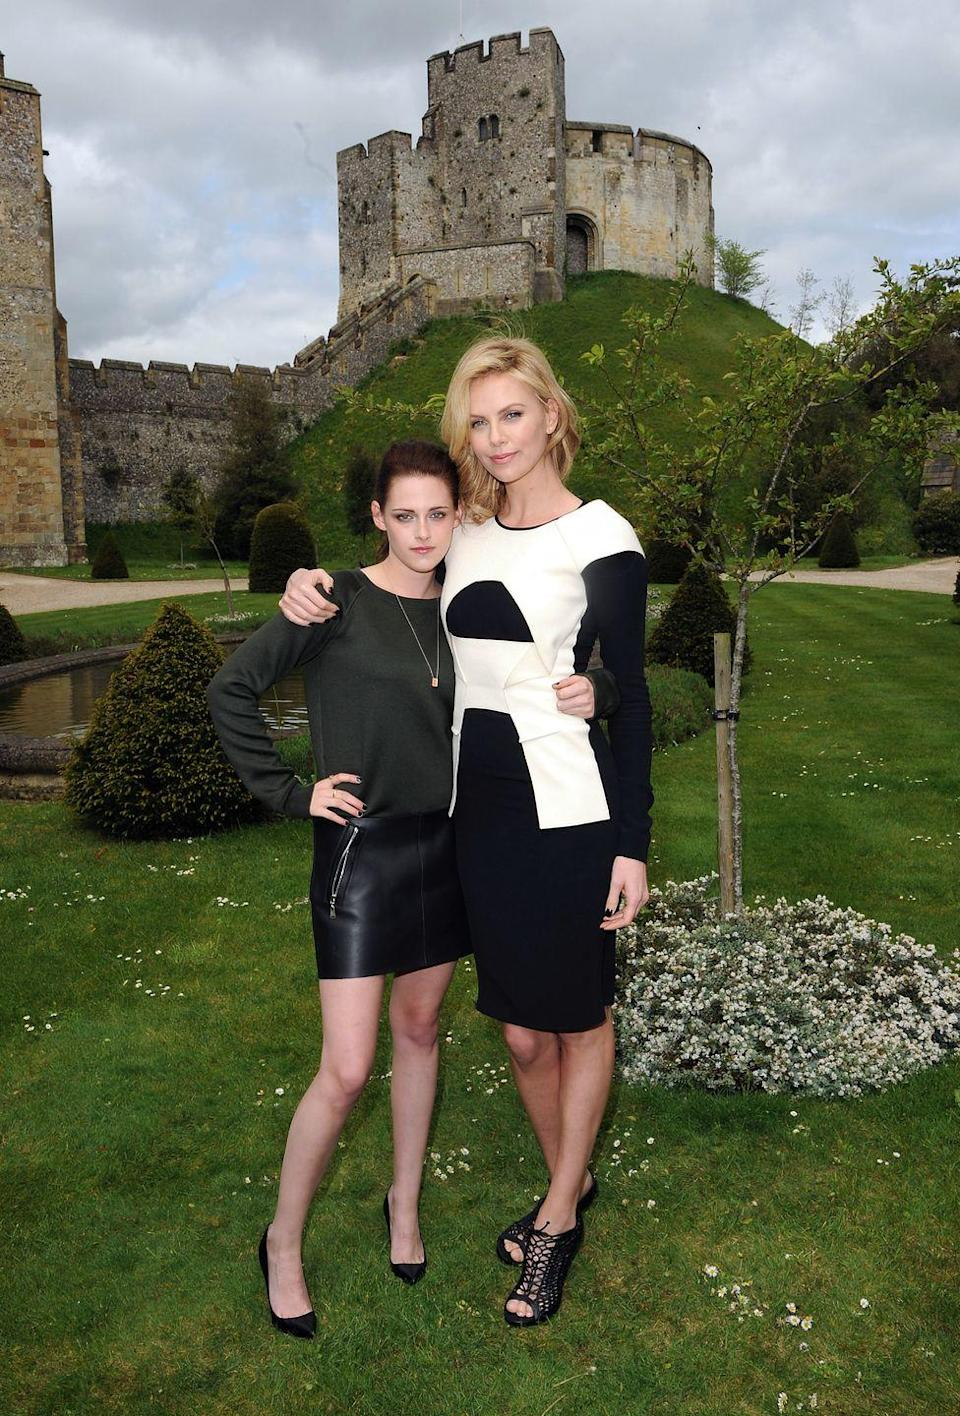 """<p>""""It happened within the first five minutes of meeting her. We were on a plane going to San Diego, for ComicCon, and I just fell in love with her."""" — Charlize Theron, <em><a href=""""https://www.celebuzz.com/2012-05-15/charlize-theron-on-falling-in-love-with-kristen-stewart-it-only-took-five-minutes-exclusive-video/"""" rel=""""nofollow noopener"""" target=""""_blank"""" data-ylk=""""slk:Celebuzz"""" class=""""link rapid-noclick-resp"""">Celebuzz</a></em></p>"""